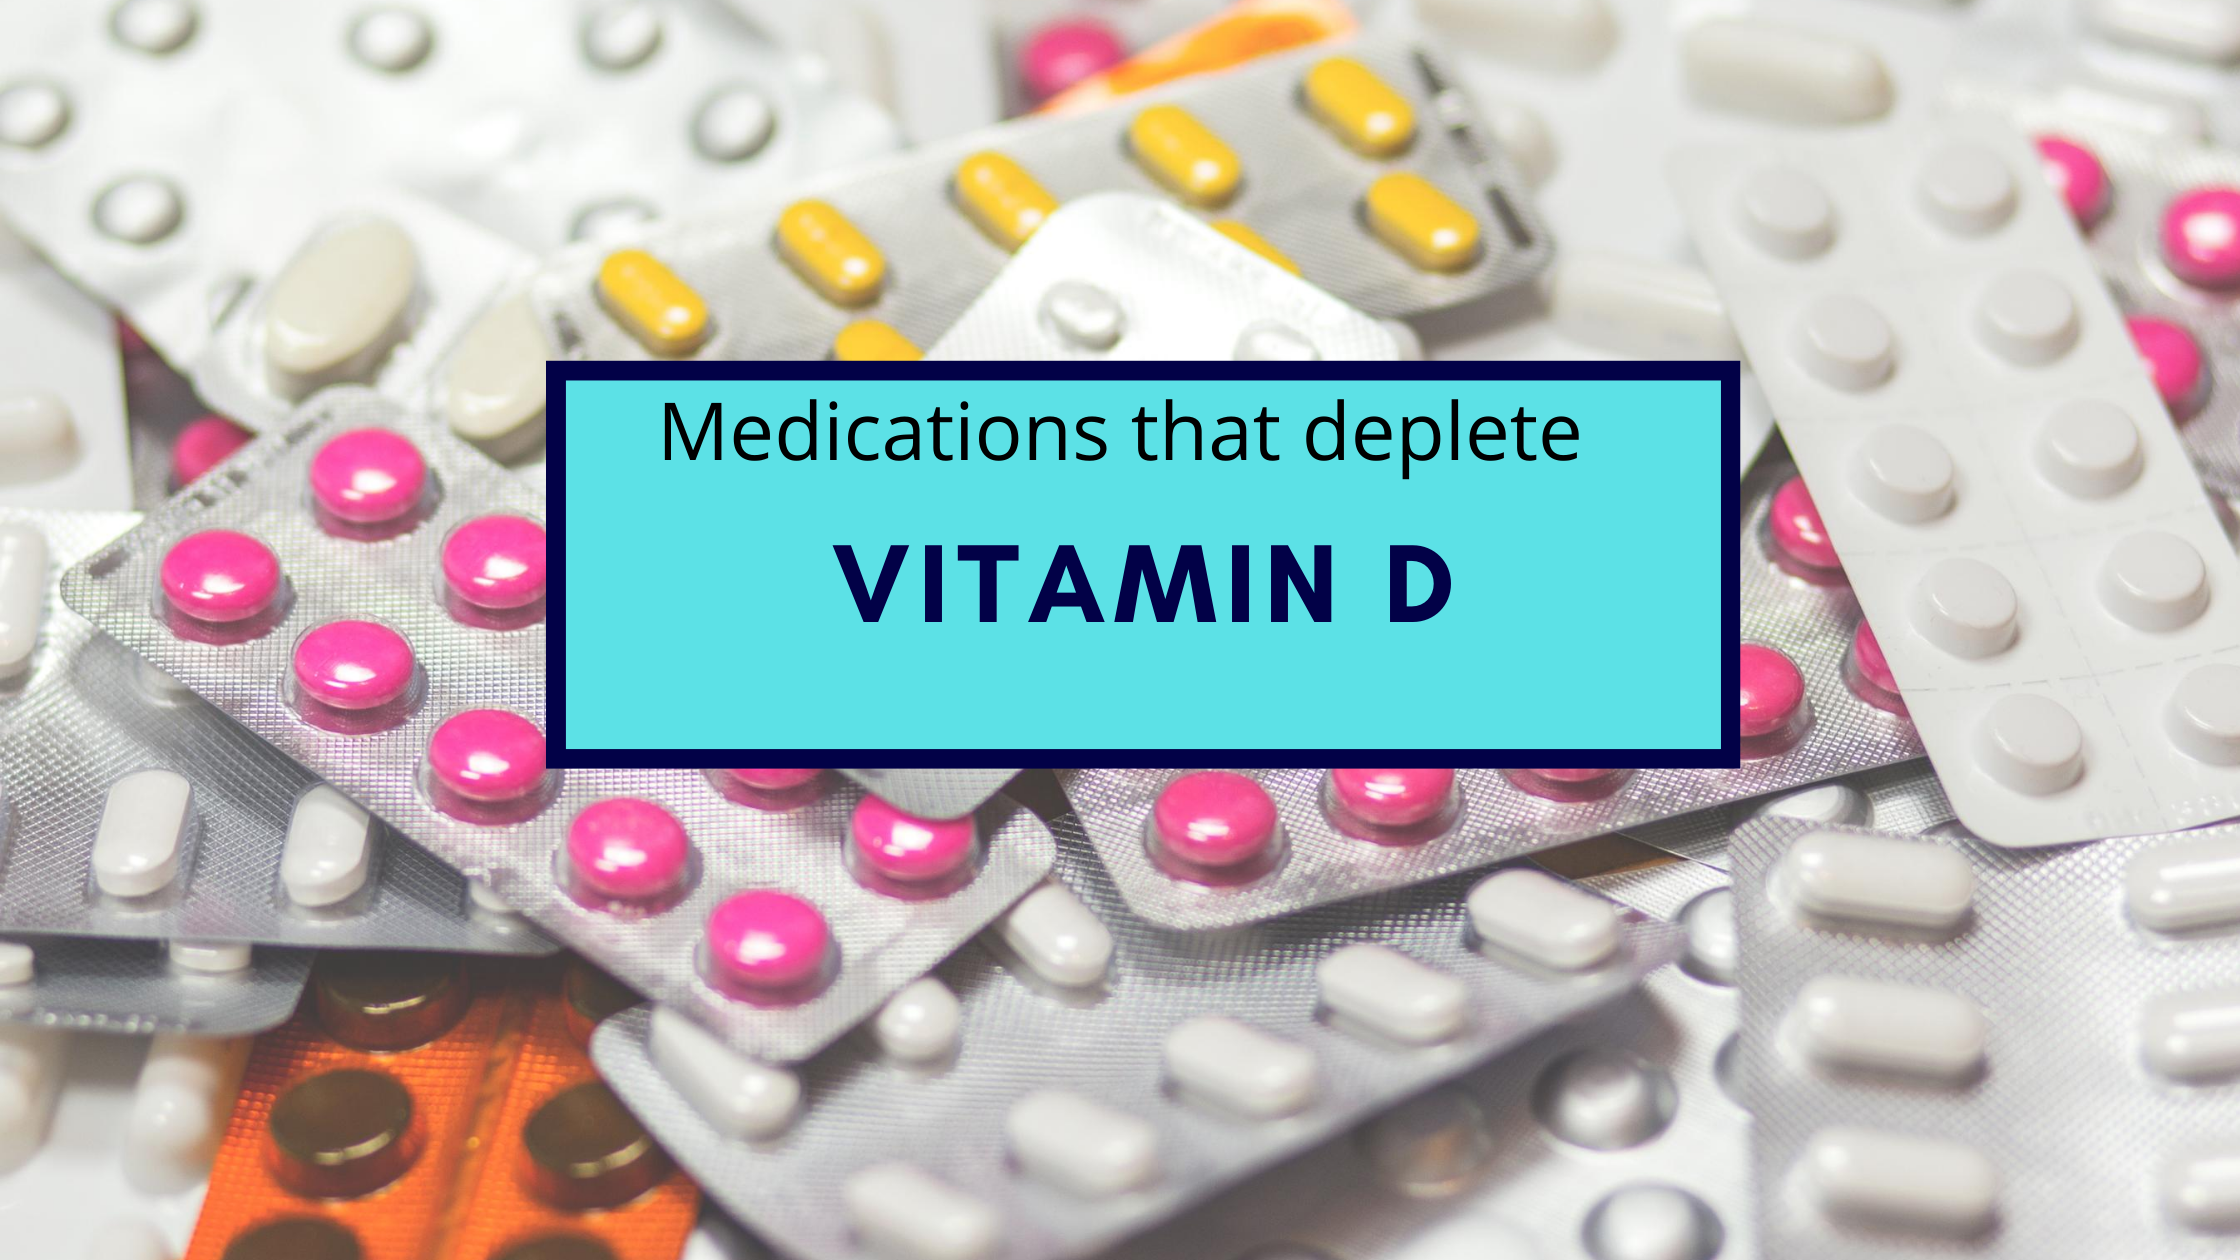 Medications that deplete vitamin D